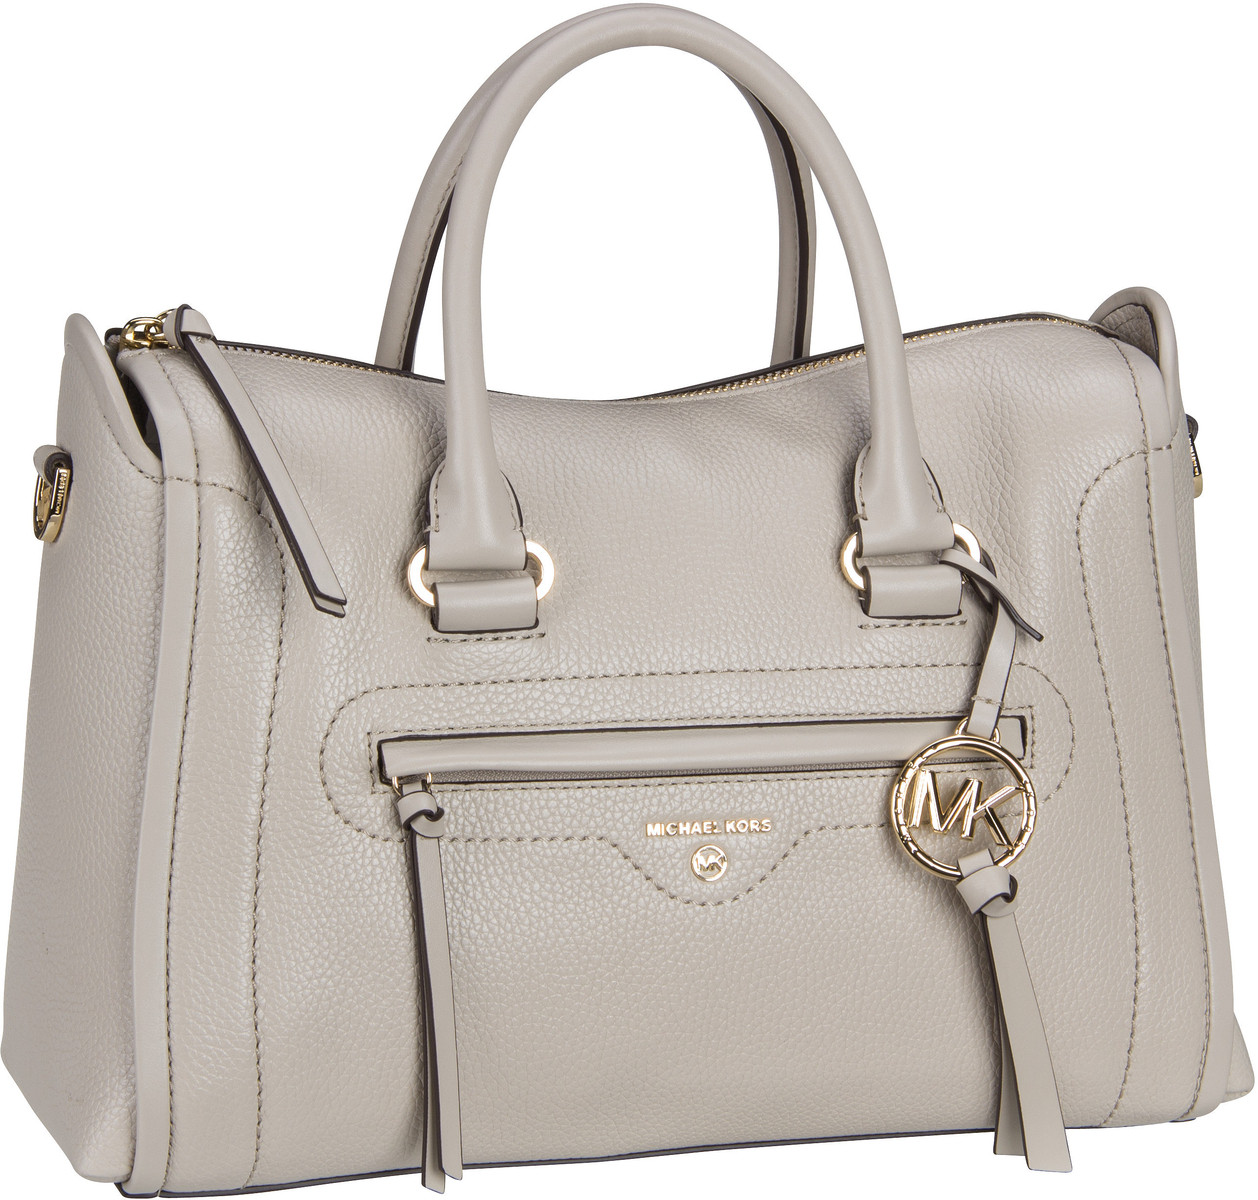 Michael Kors Handtasche Carine Medium Satchel Light Sand